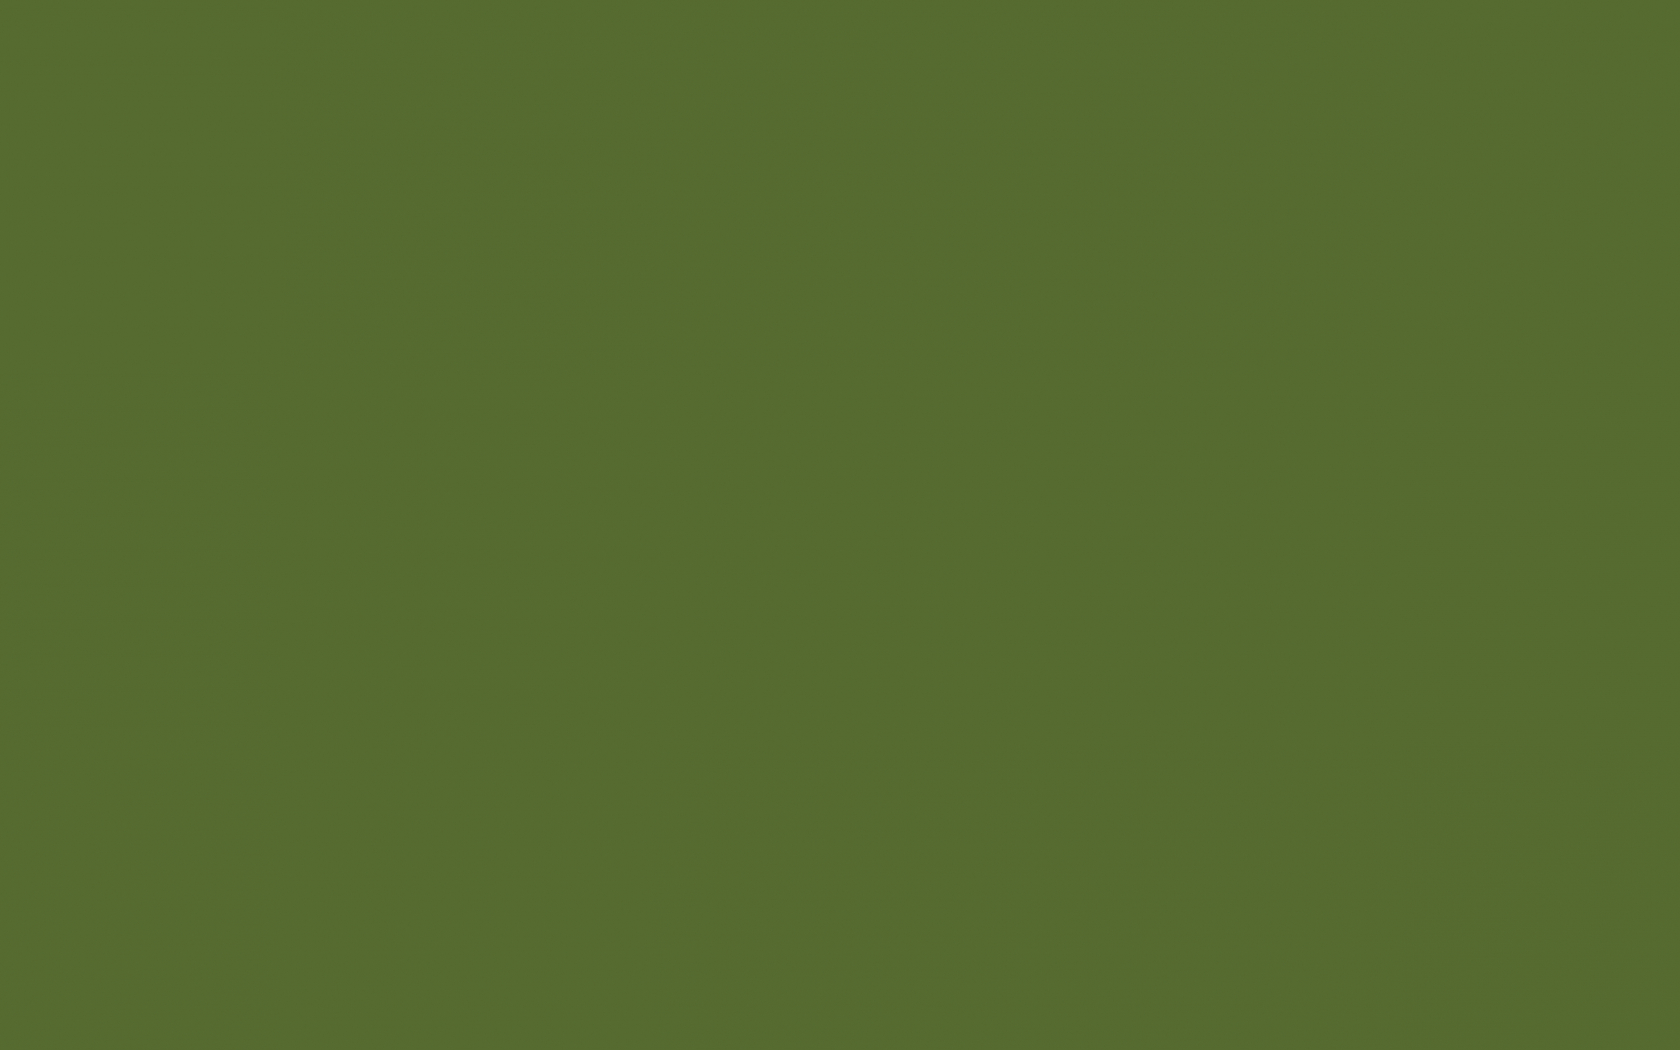 Olive Green Wallpapers - Wallpaper Cave